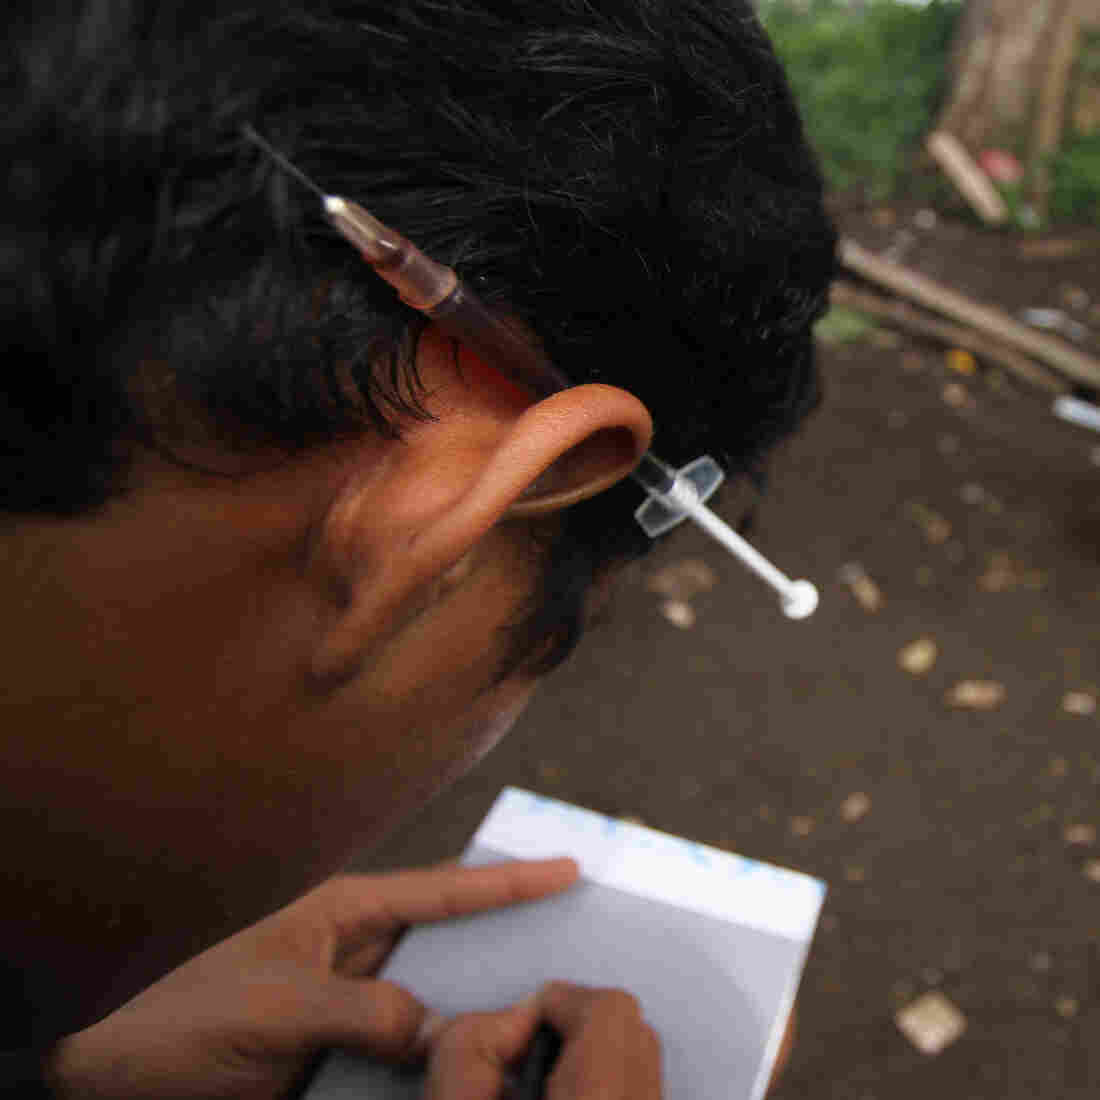 A heroin user keeps a syringe tucked behind his ear at a park in the city of Medan on Indonesia's Sumatra island. Cordita-Caritas Medan, a nongovernmental organization active there, works to reduce HIV infections through rehab of drug users and a needle exchange program.